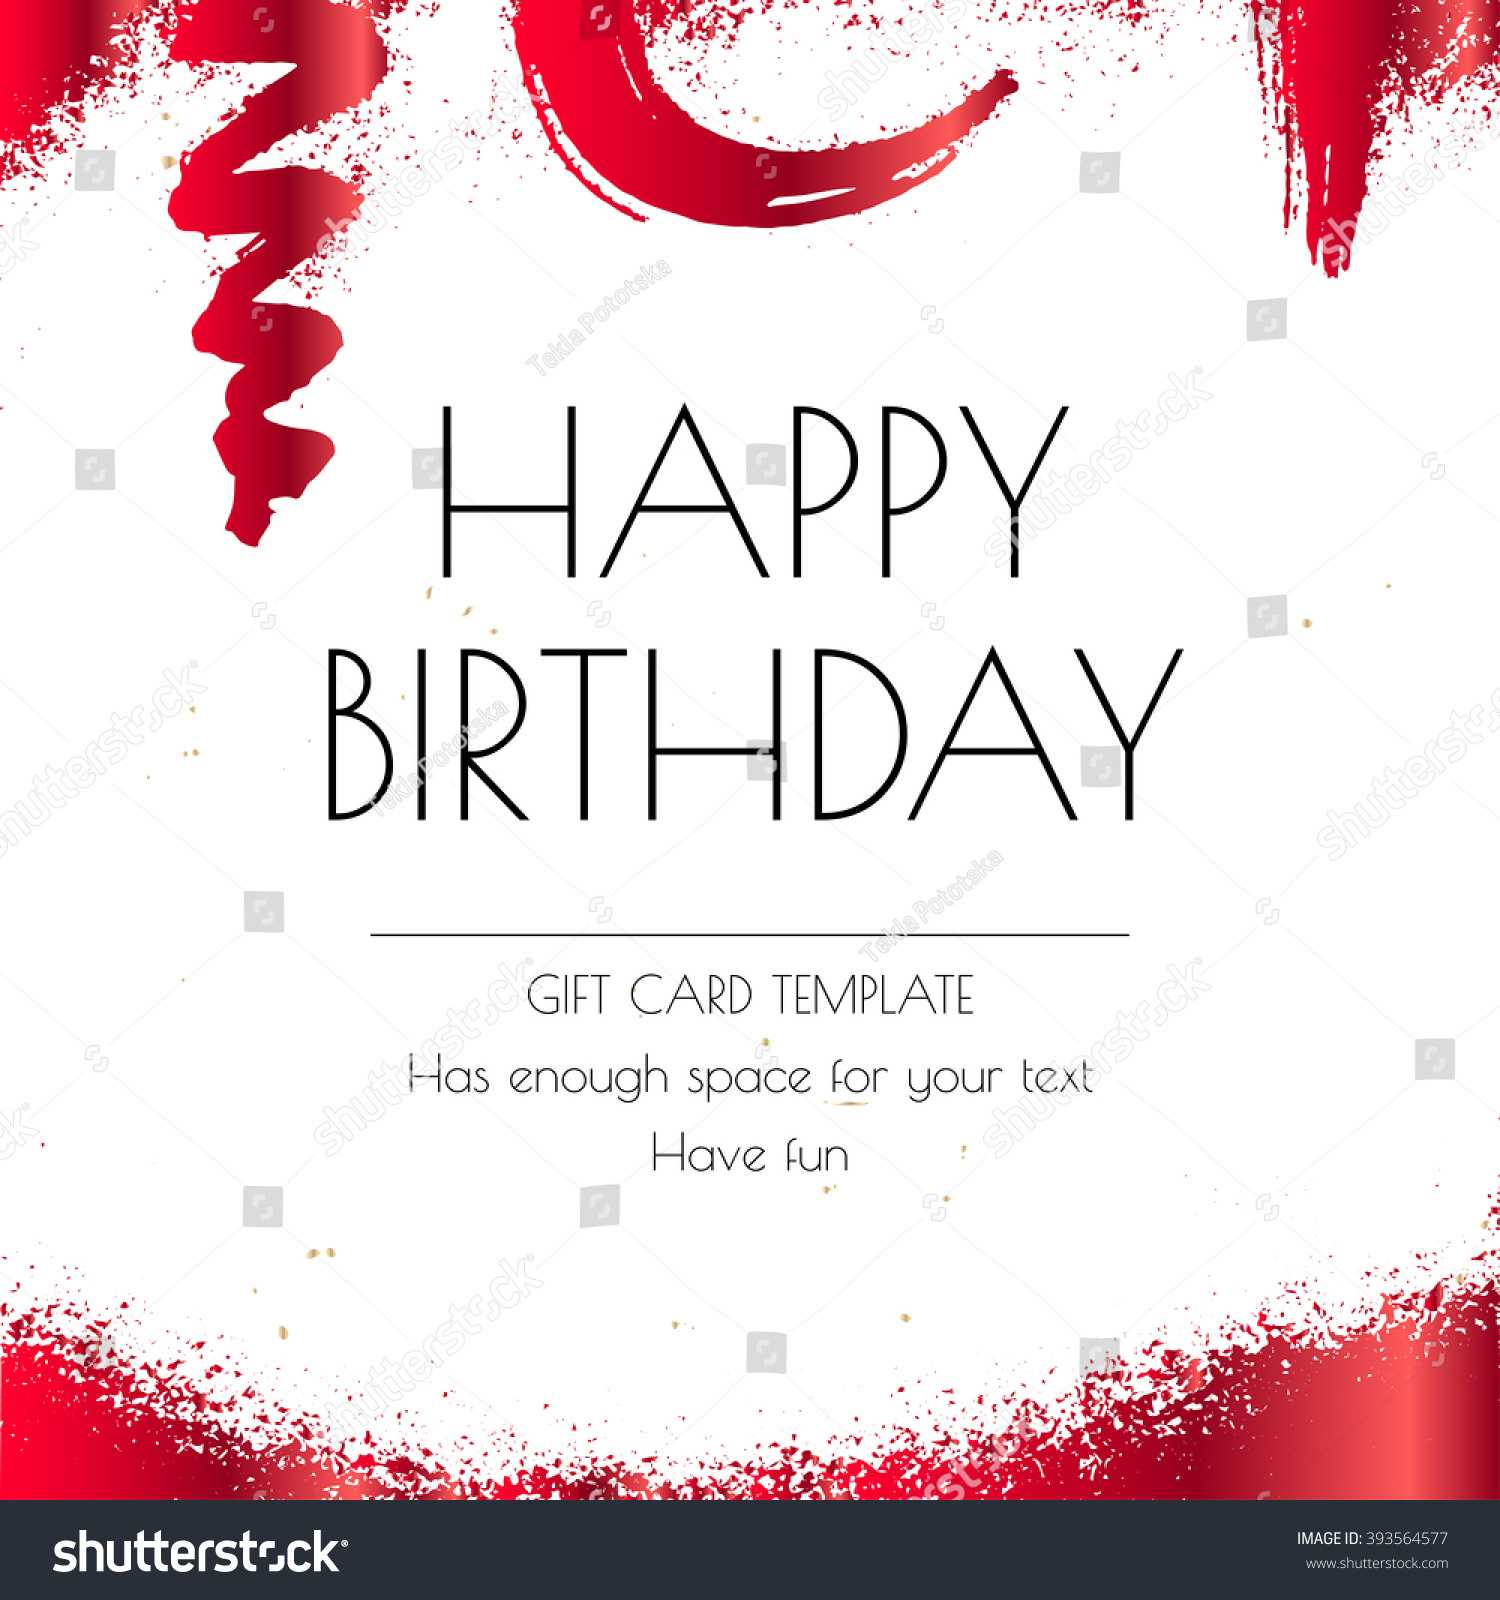 Thank You Card Indesign Template ] – Weekly Calendar Within Indesign Birthday Card Template